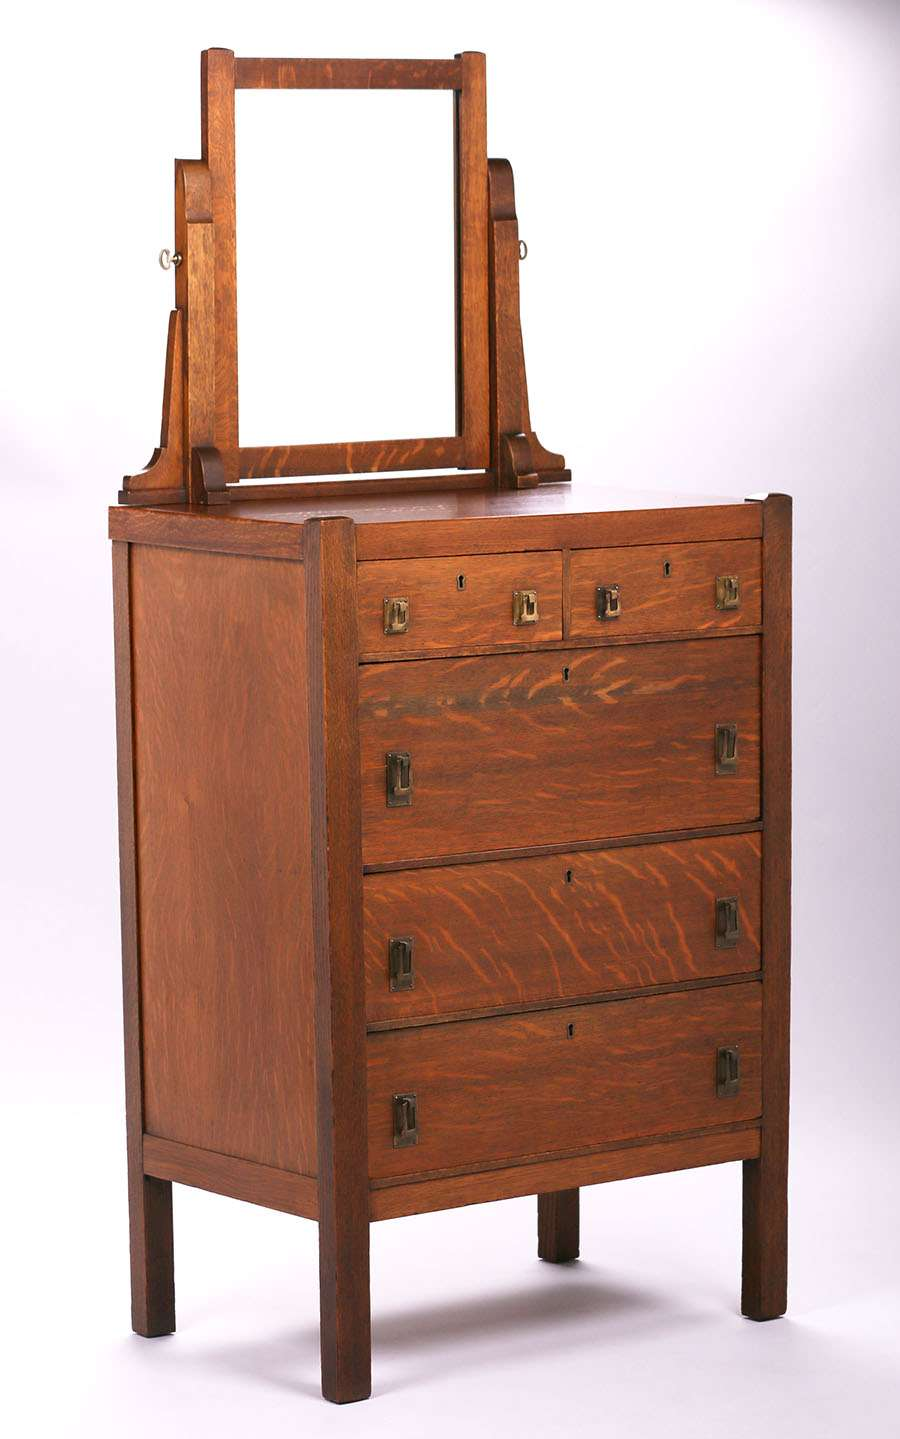 Luce Furniture Co Tall Dresser With Mirror C1910 Original Finish Signed Both Label And Retailer S From Denver